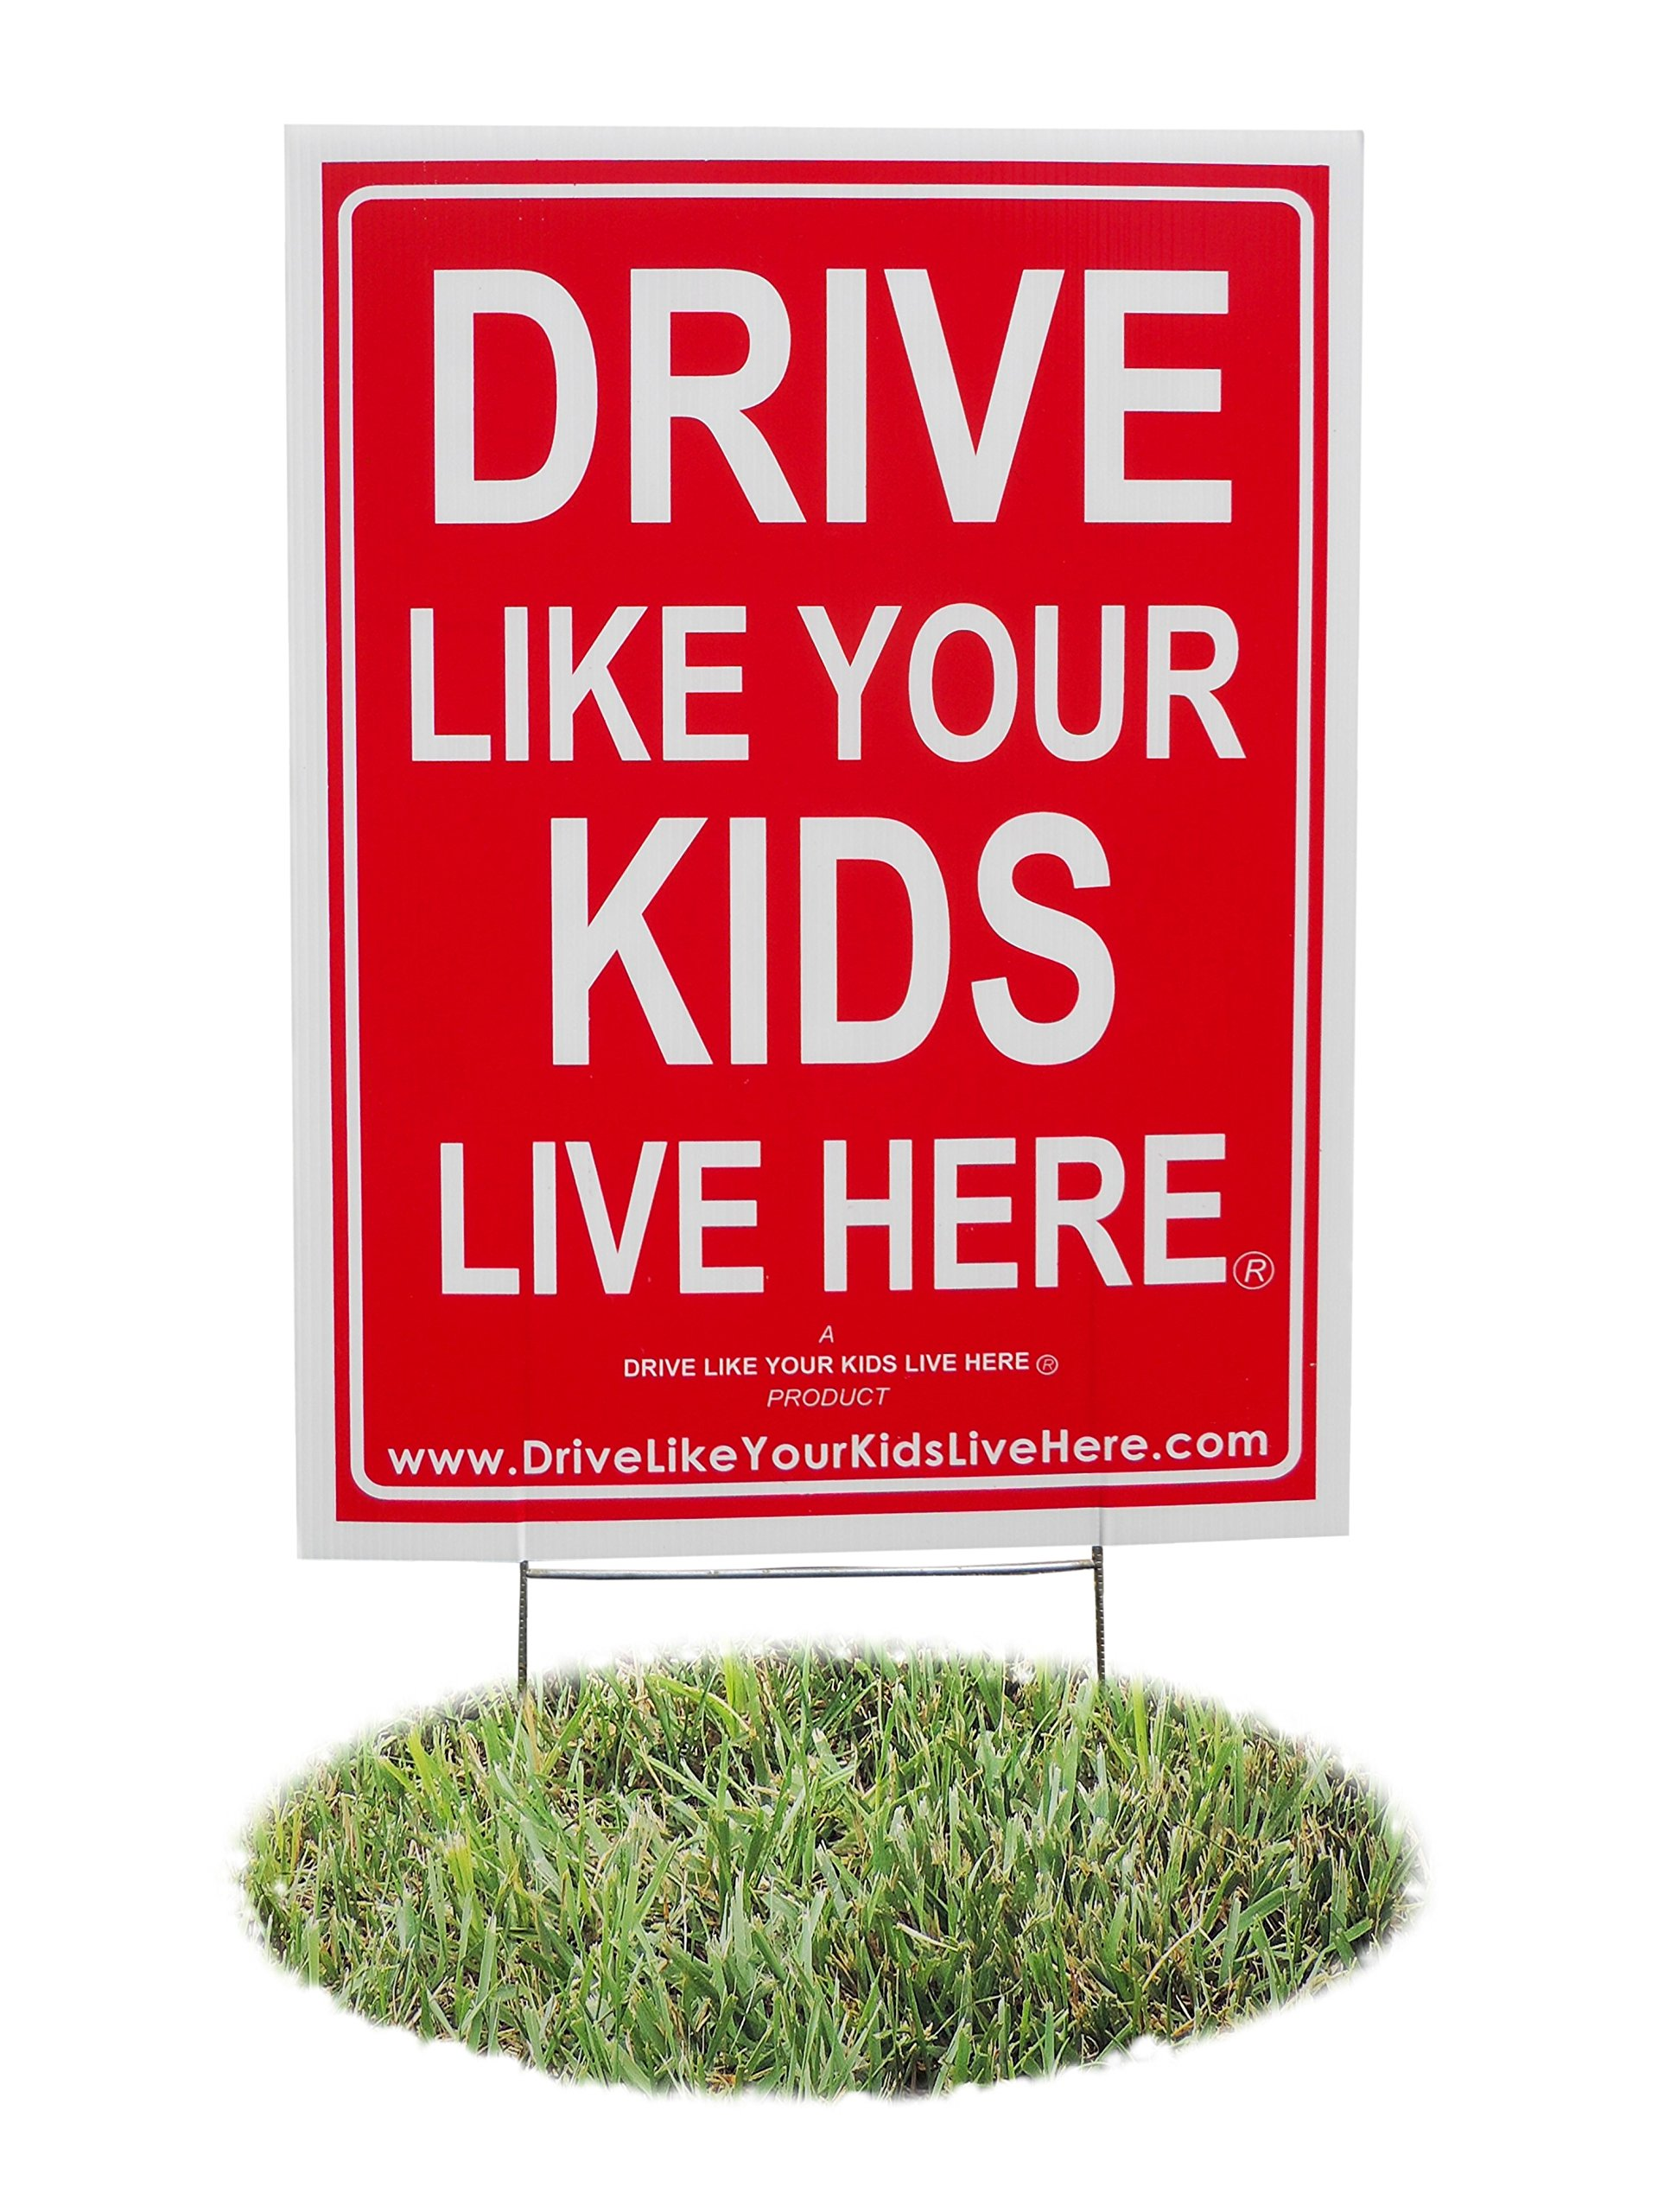 Drive Like Your Kids Live Here Yard Sign, Slow Down Sign/Children at Play Reminder